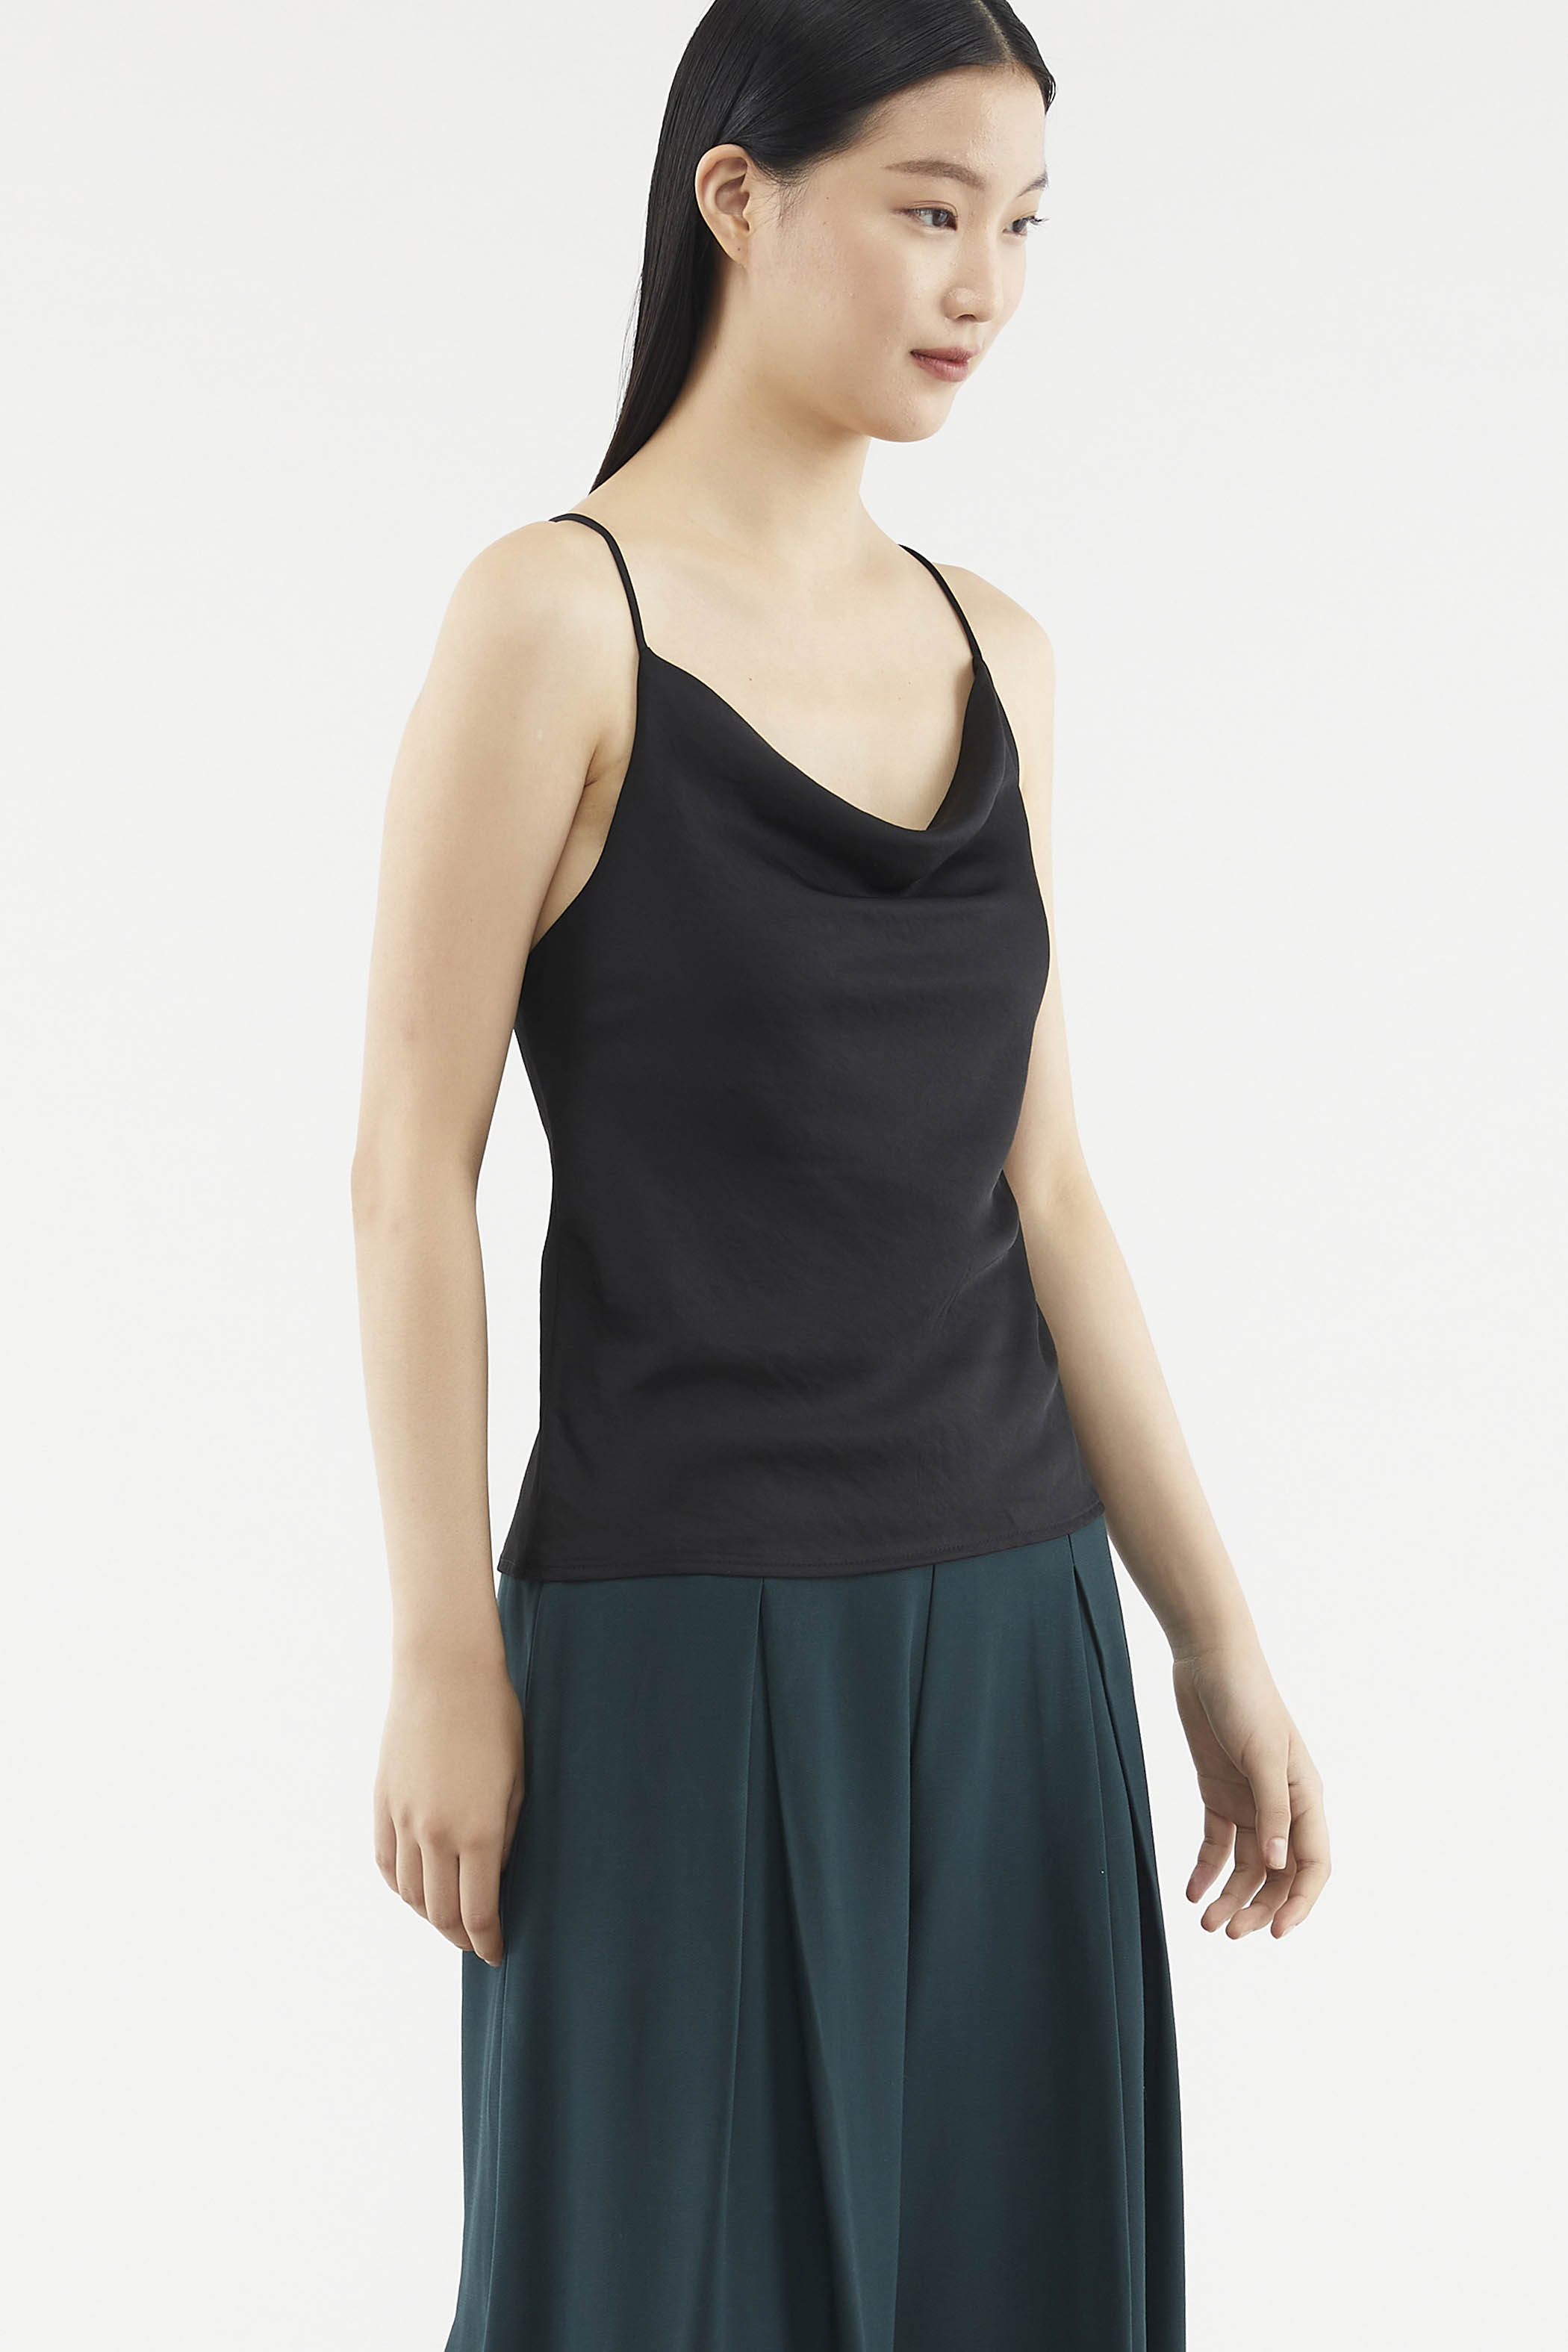 Emlyn Cowl-neck Camisole